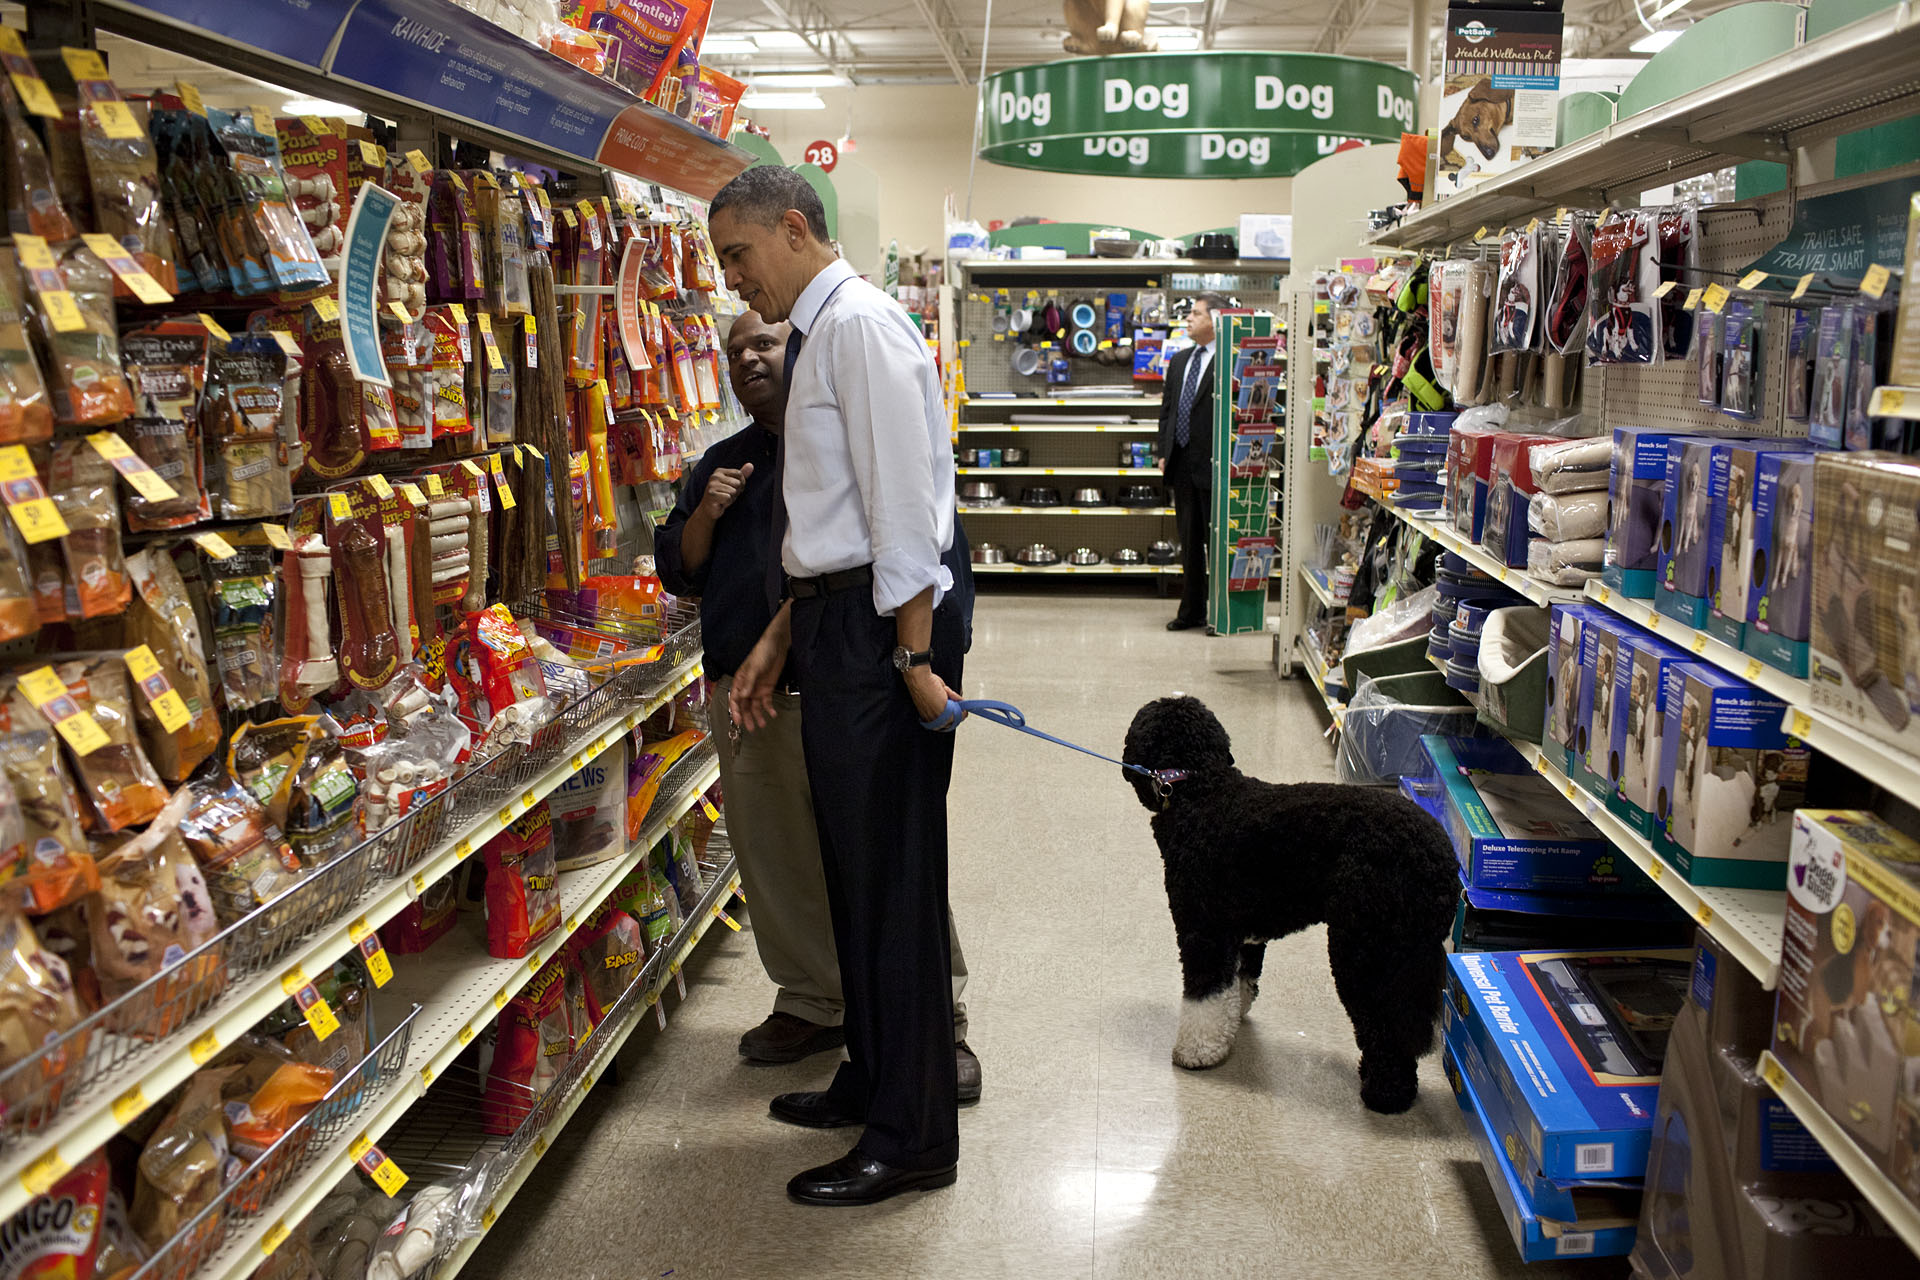 President Barack Obama Selects A Bone For Bo